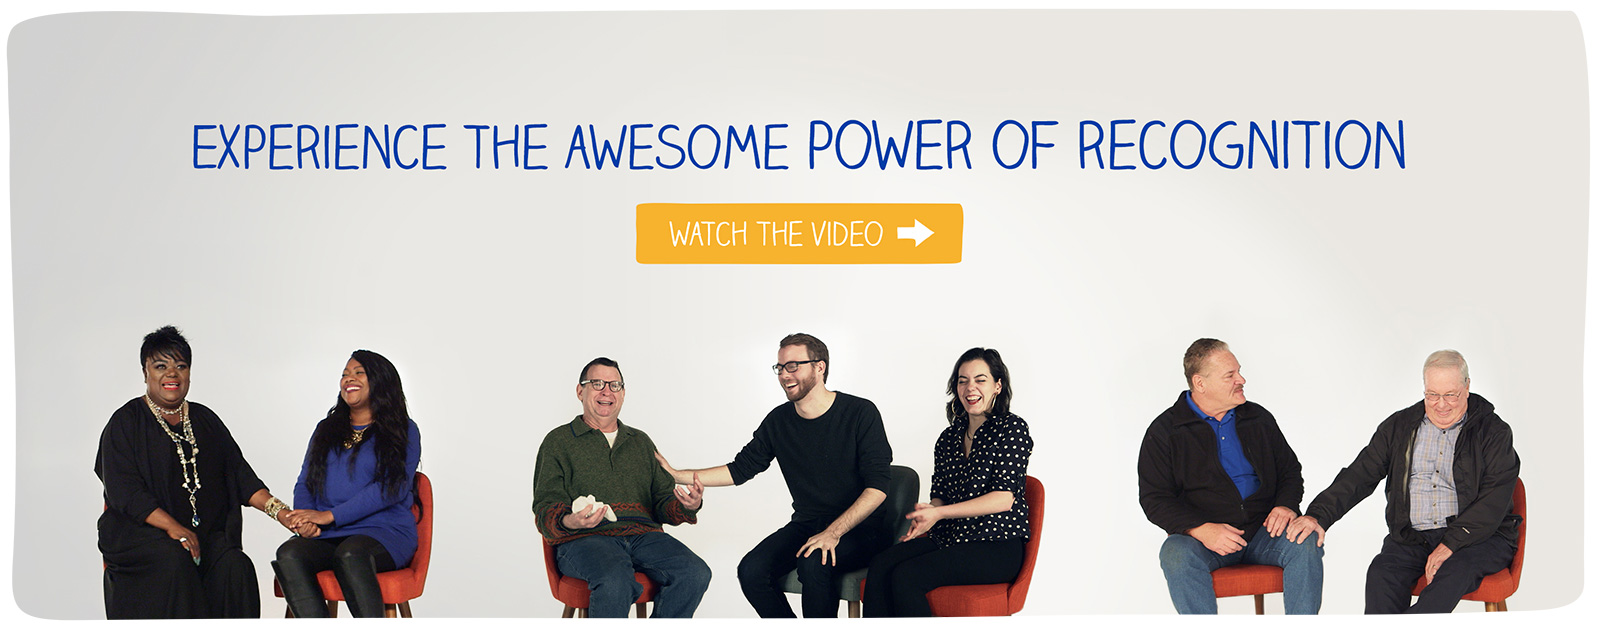 Experience the Awesome Power of Recognition | OGO (O Great One!)